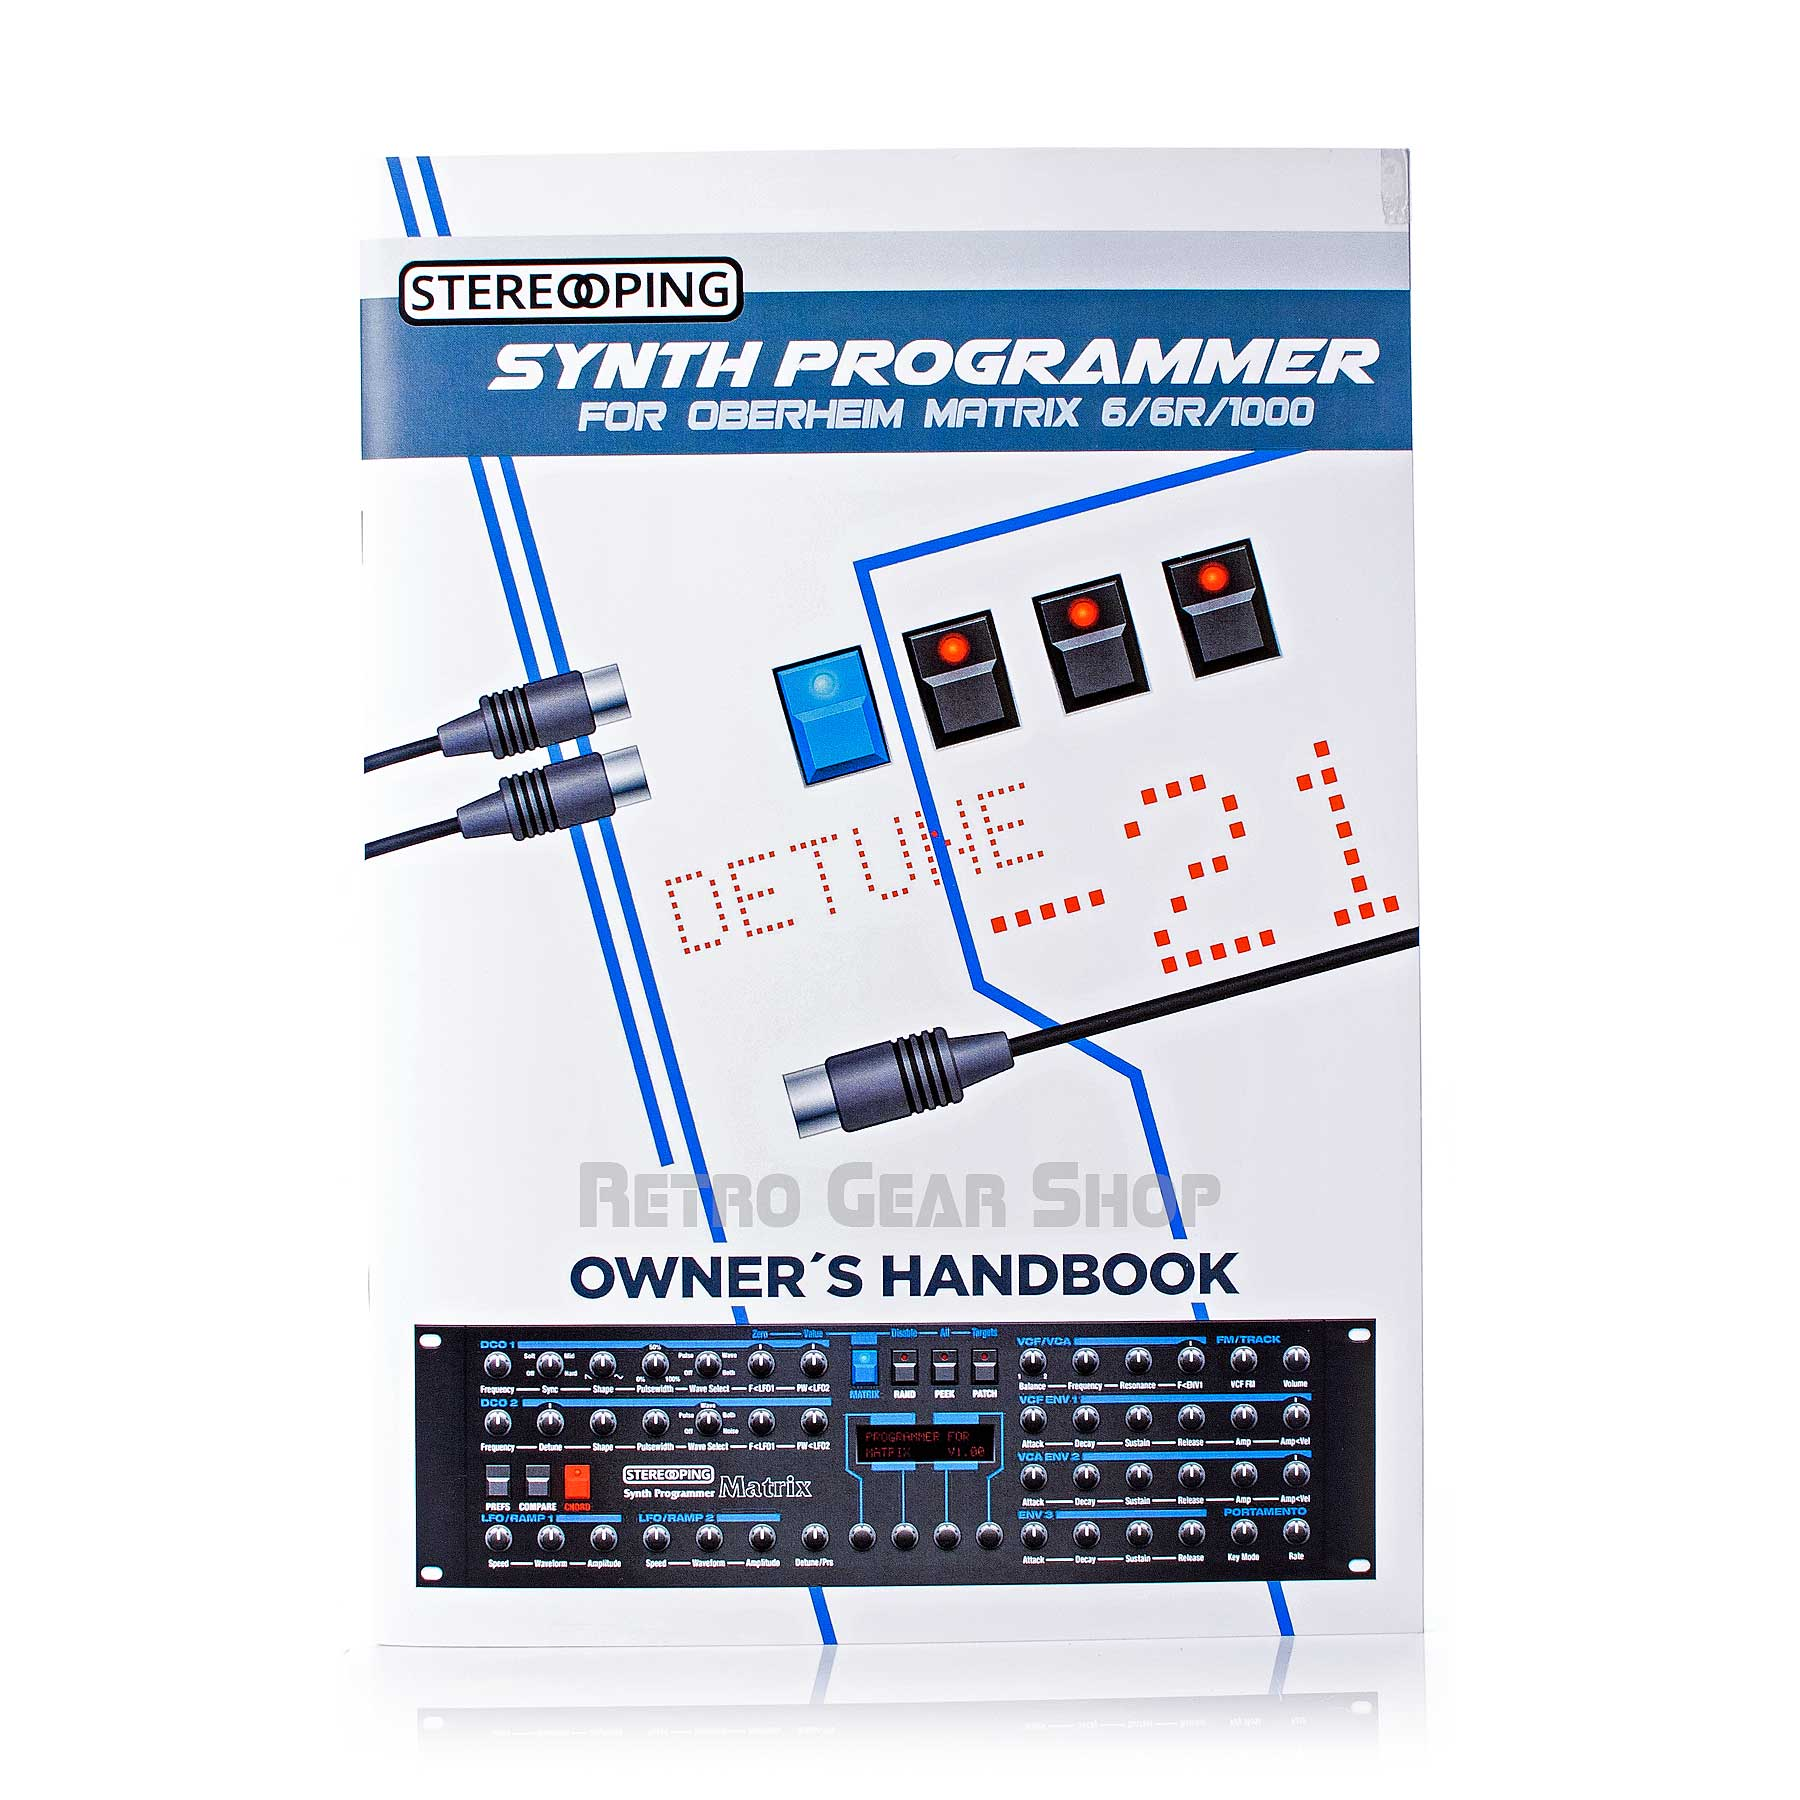 Stereoping Programmer DIY Kit User Manual